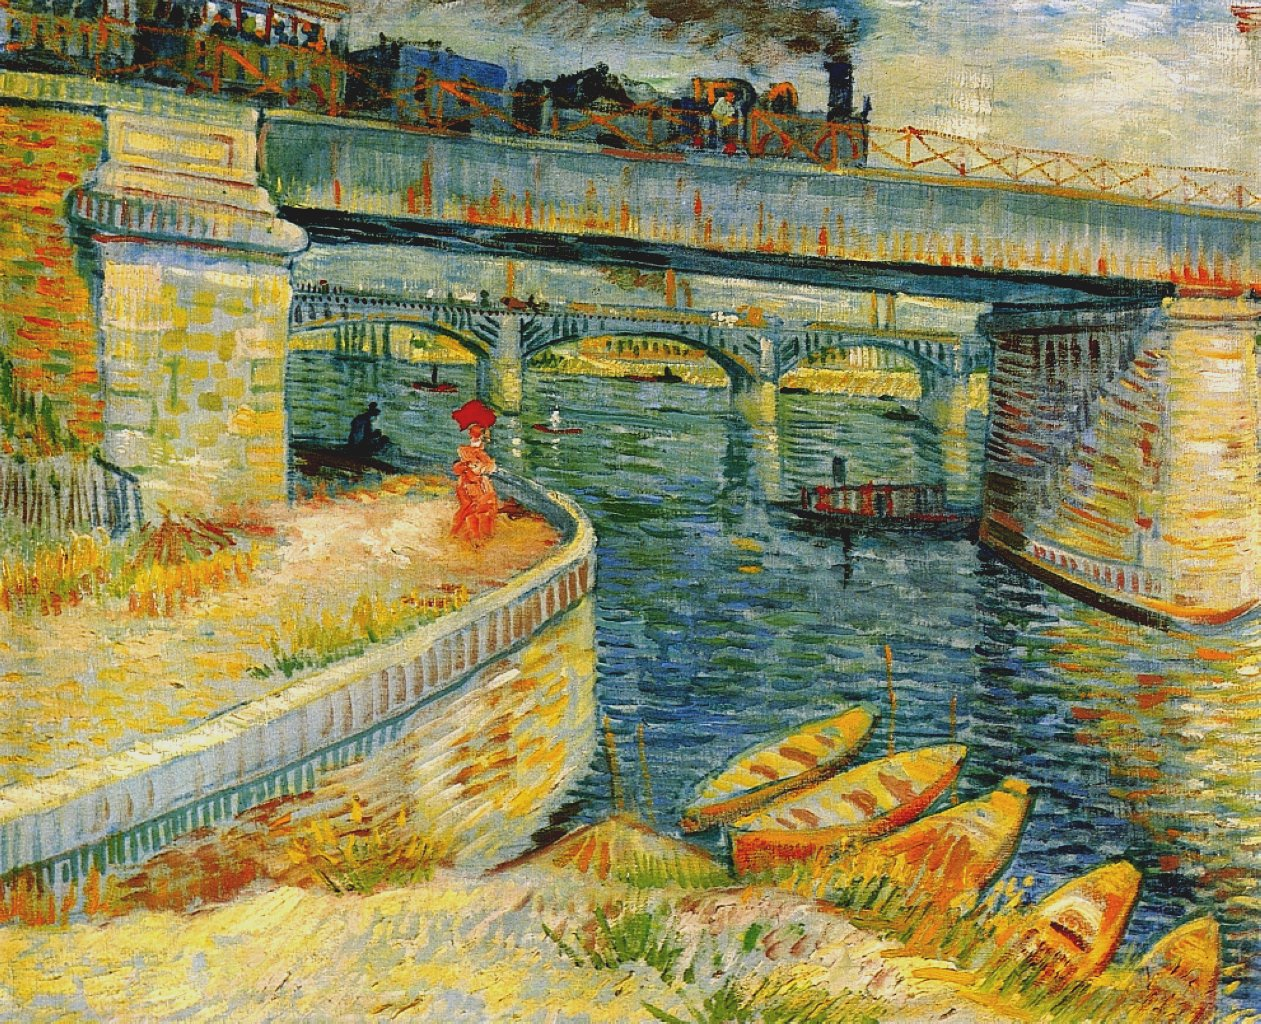 File:Vincent van Gogh - Bridges across the Seine at Asnieres.jpg